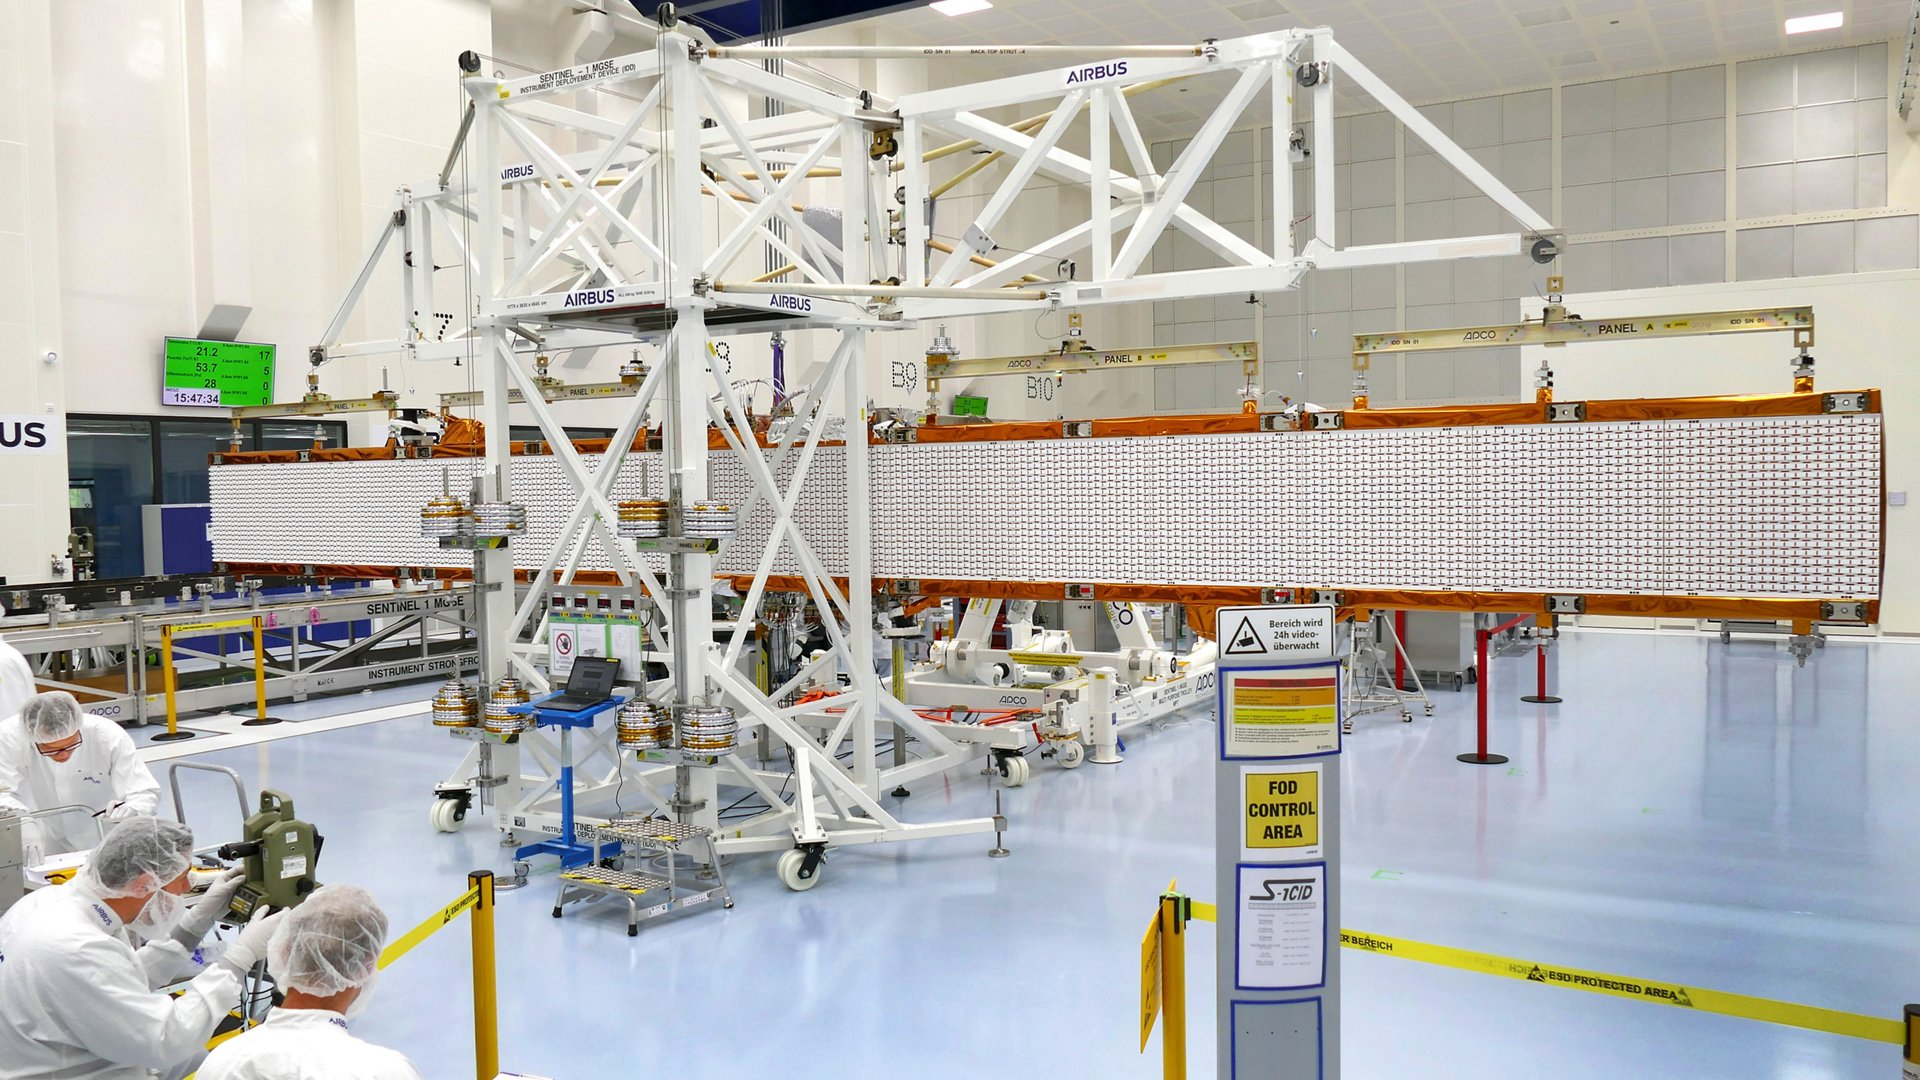 The 12.3 meter antenna is made up of five panels. Four of them are folded sideways onto a support frame during launch and will be deployed in orbit. Airbus (Friedrichshafen, Germany) is responsible for the radar instrument.